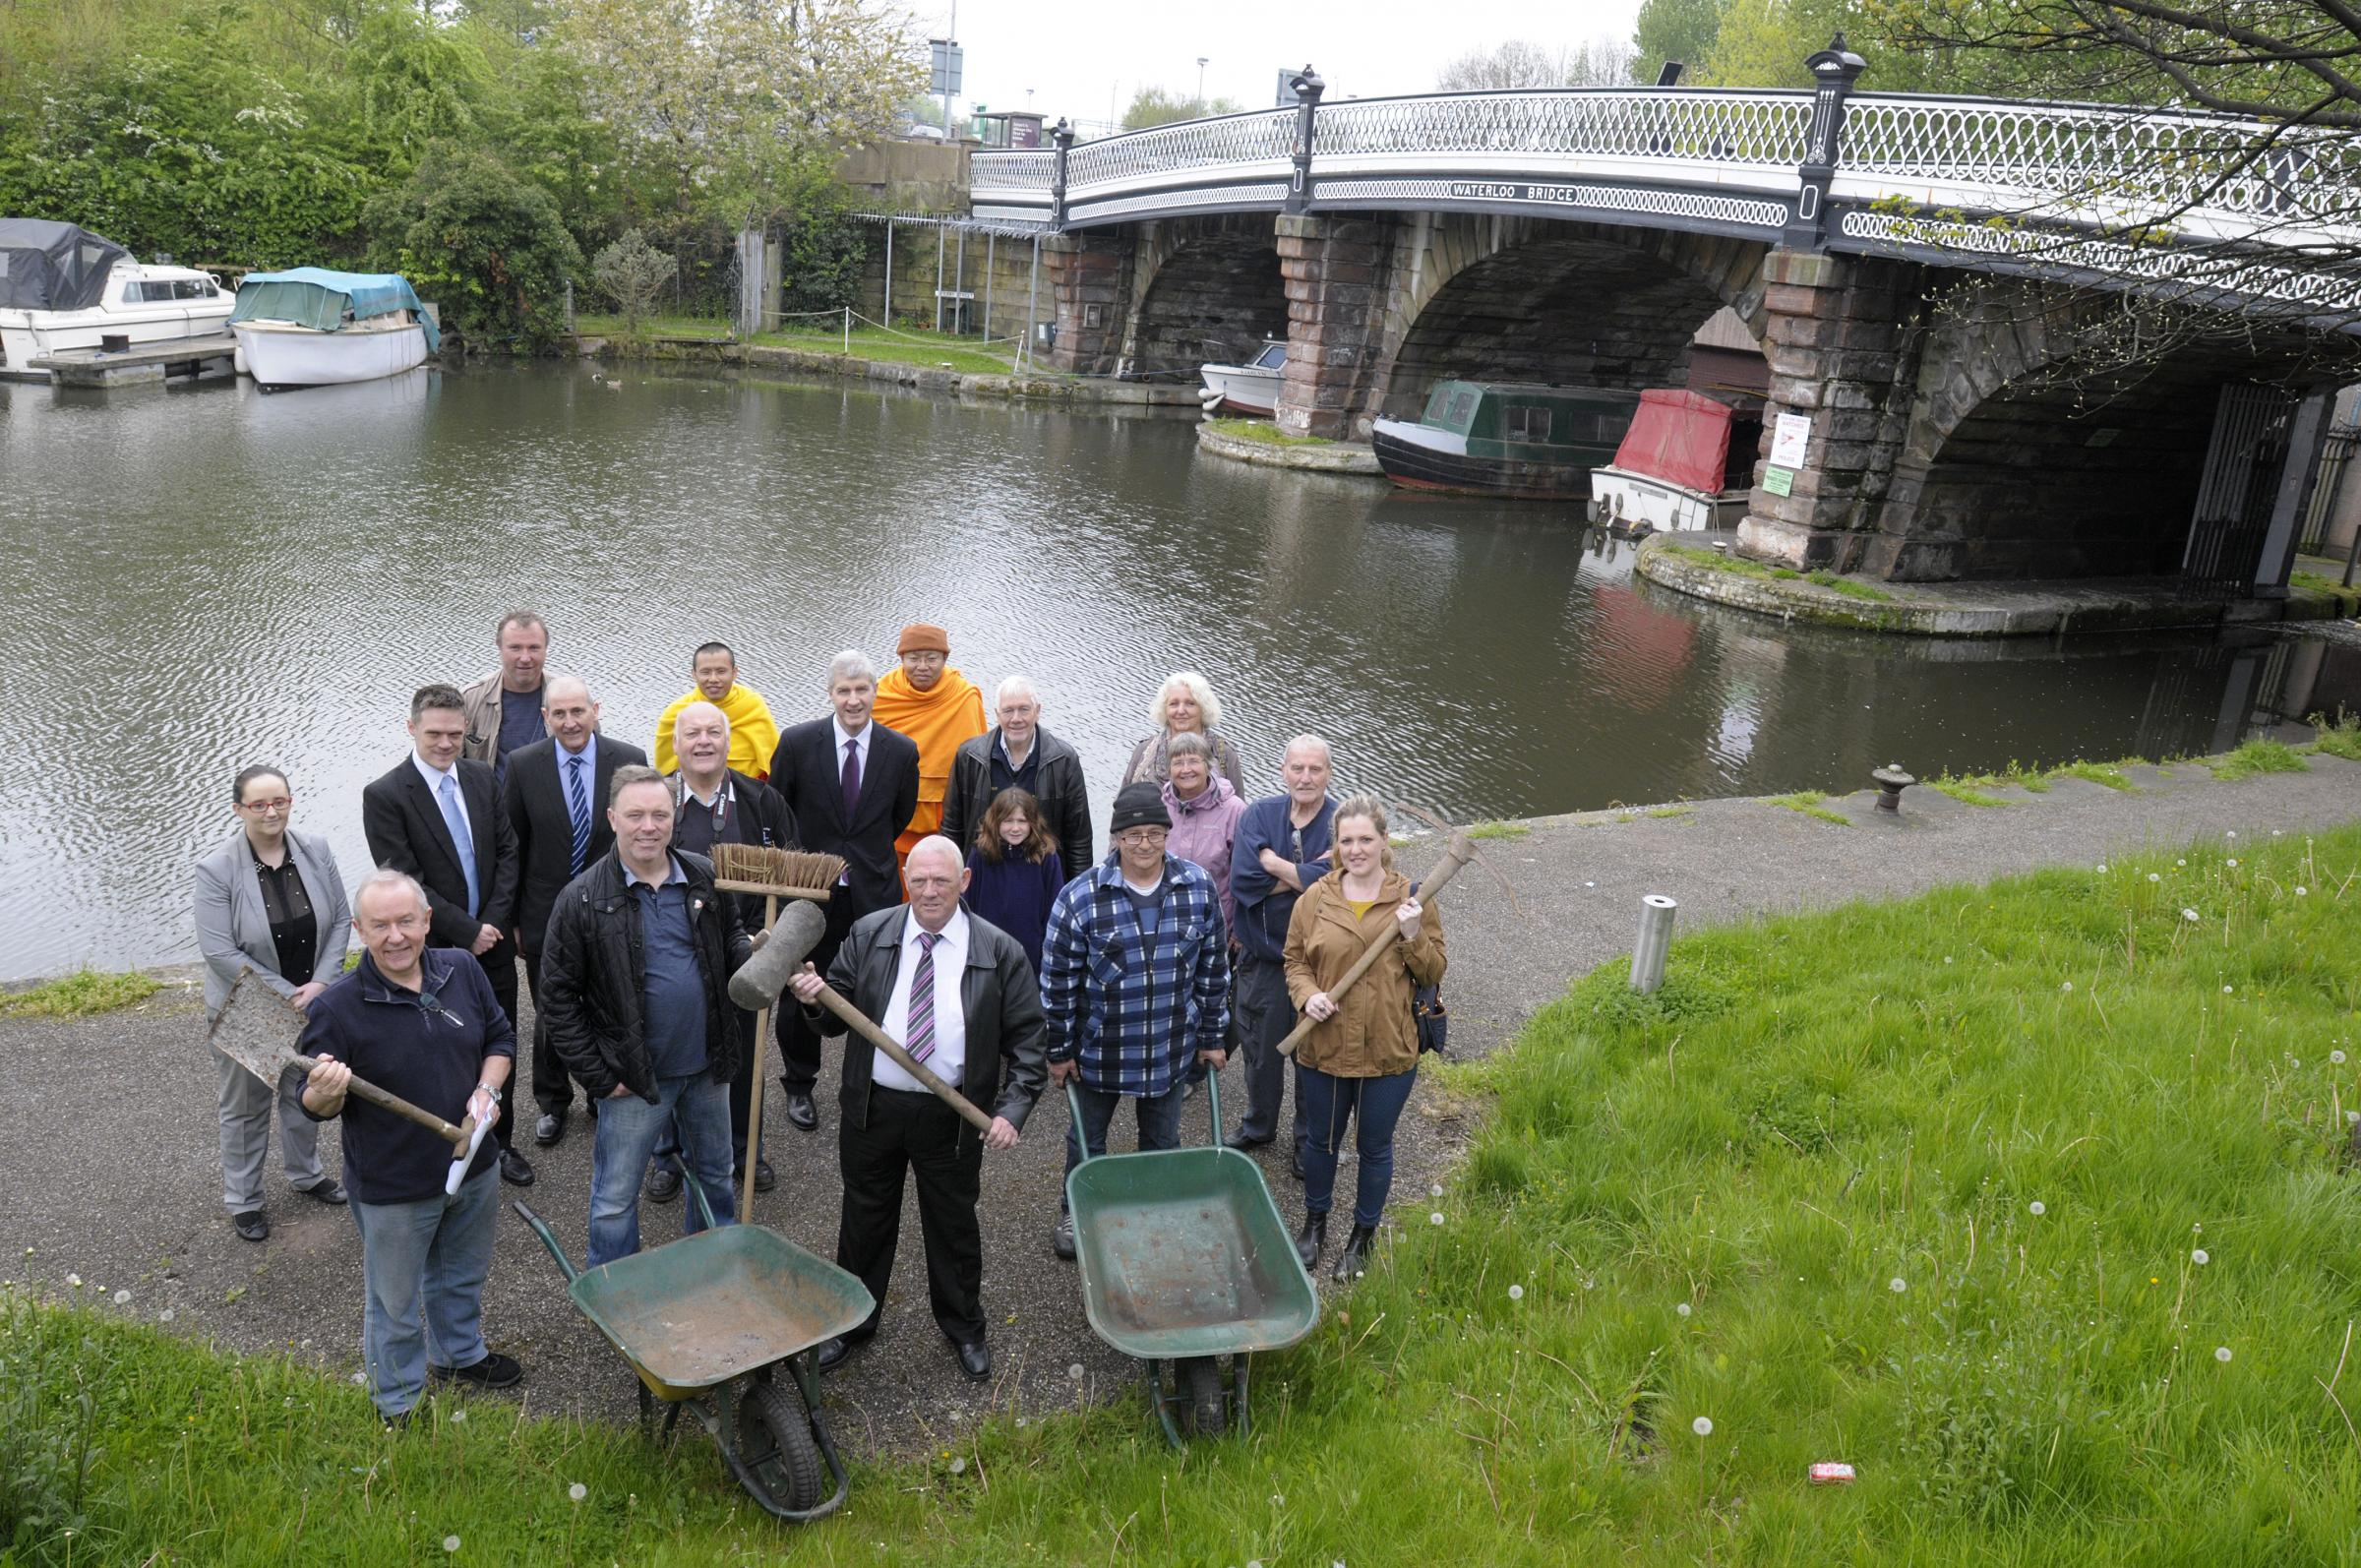 Halton MP Derek Twigg joins Noel Hutchinson and campaigners at the site of the proposed new locks